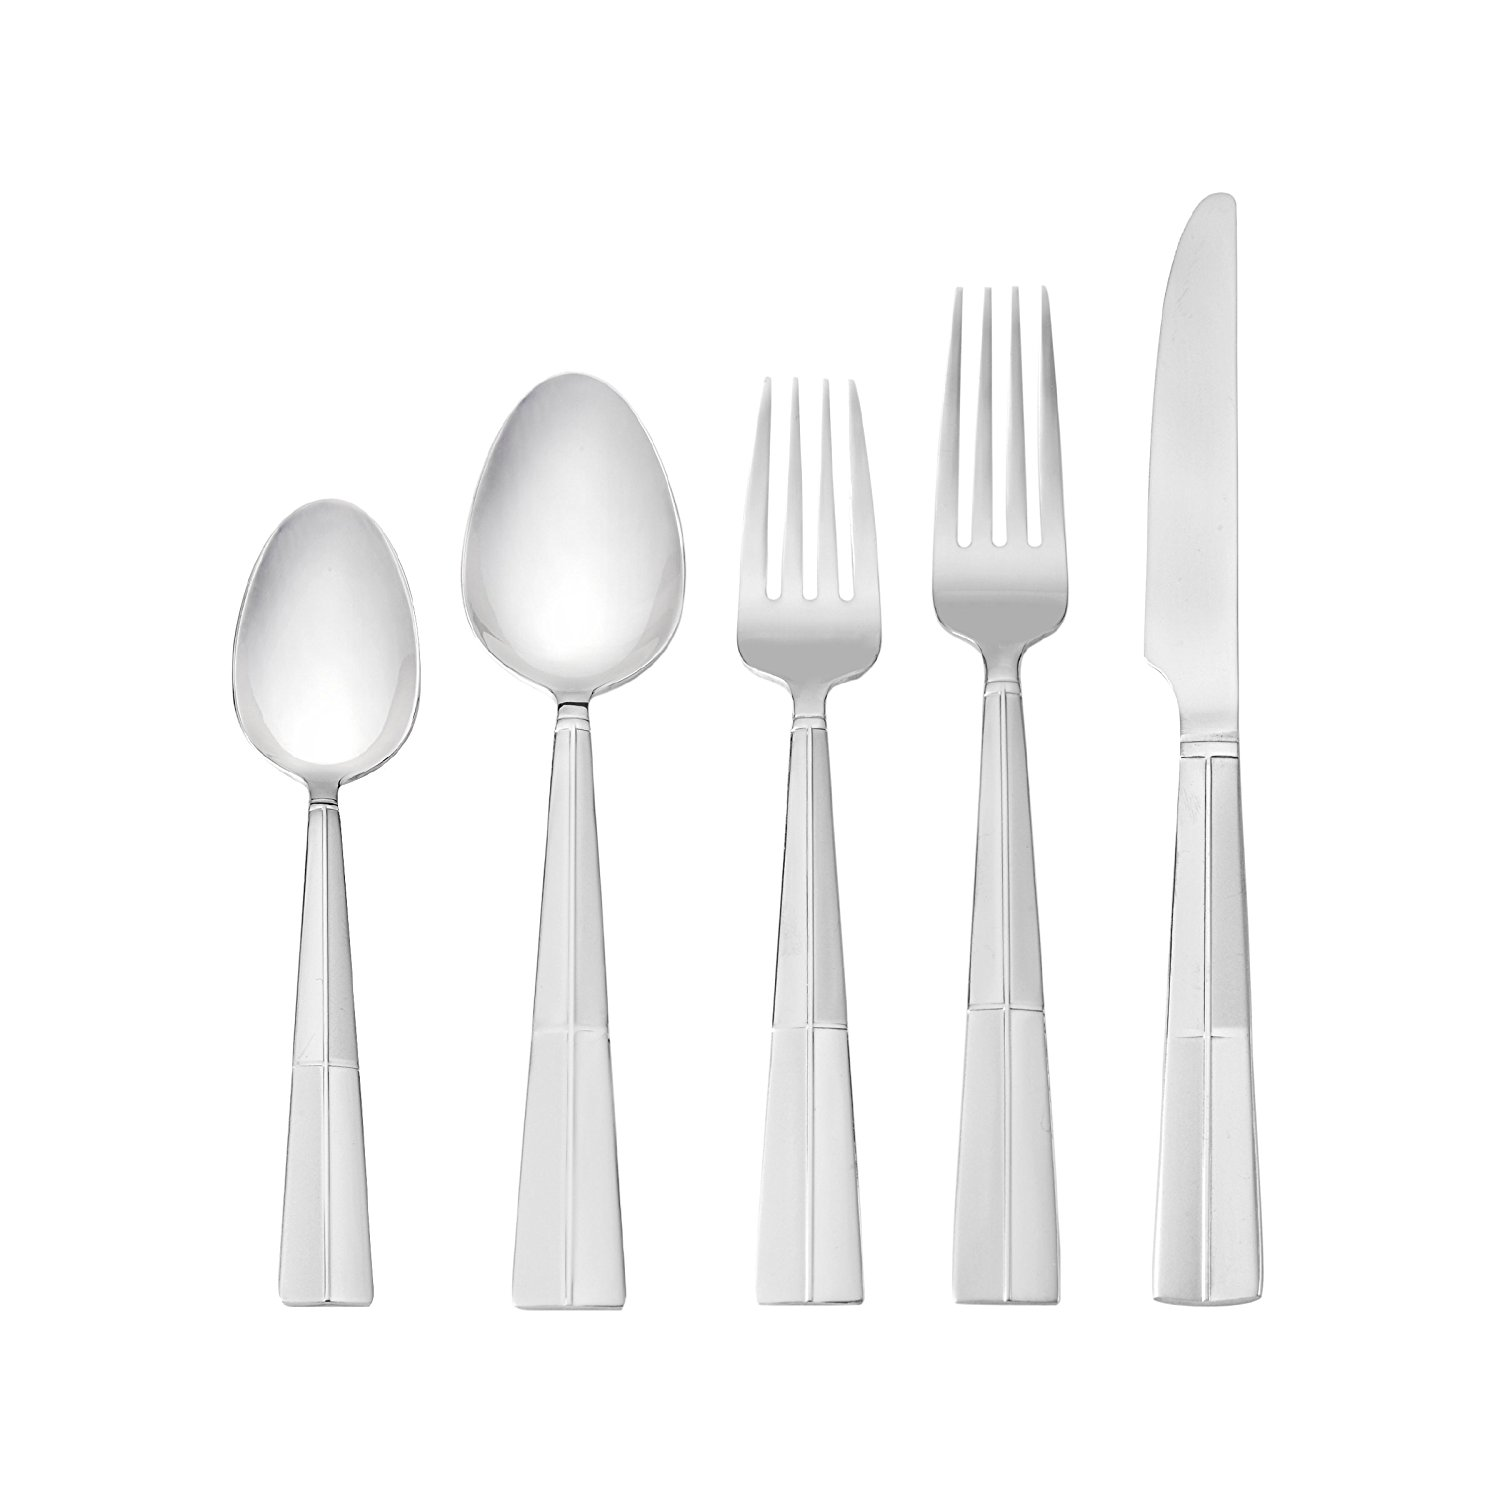 Best Deal On Silverware Arabesque Frost Stainless Steel Flatware 20 Piece Set